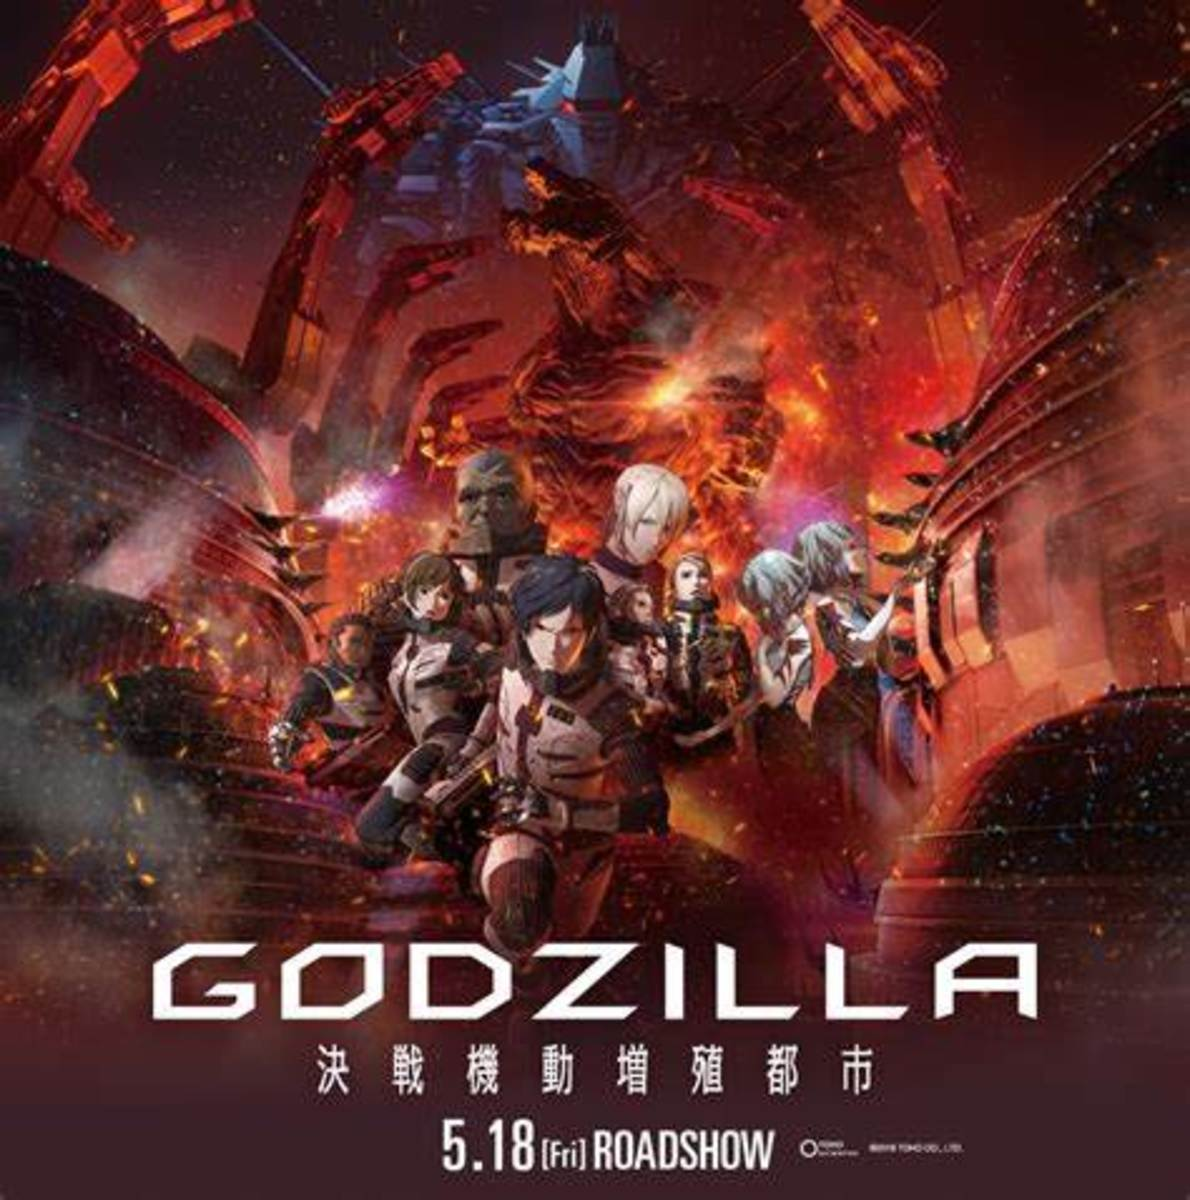 Promotional image for Godzilla: City On The Edge of Battle.